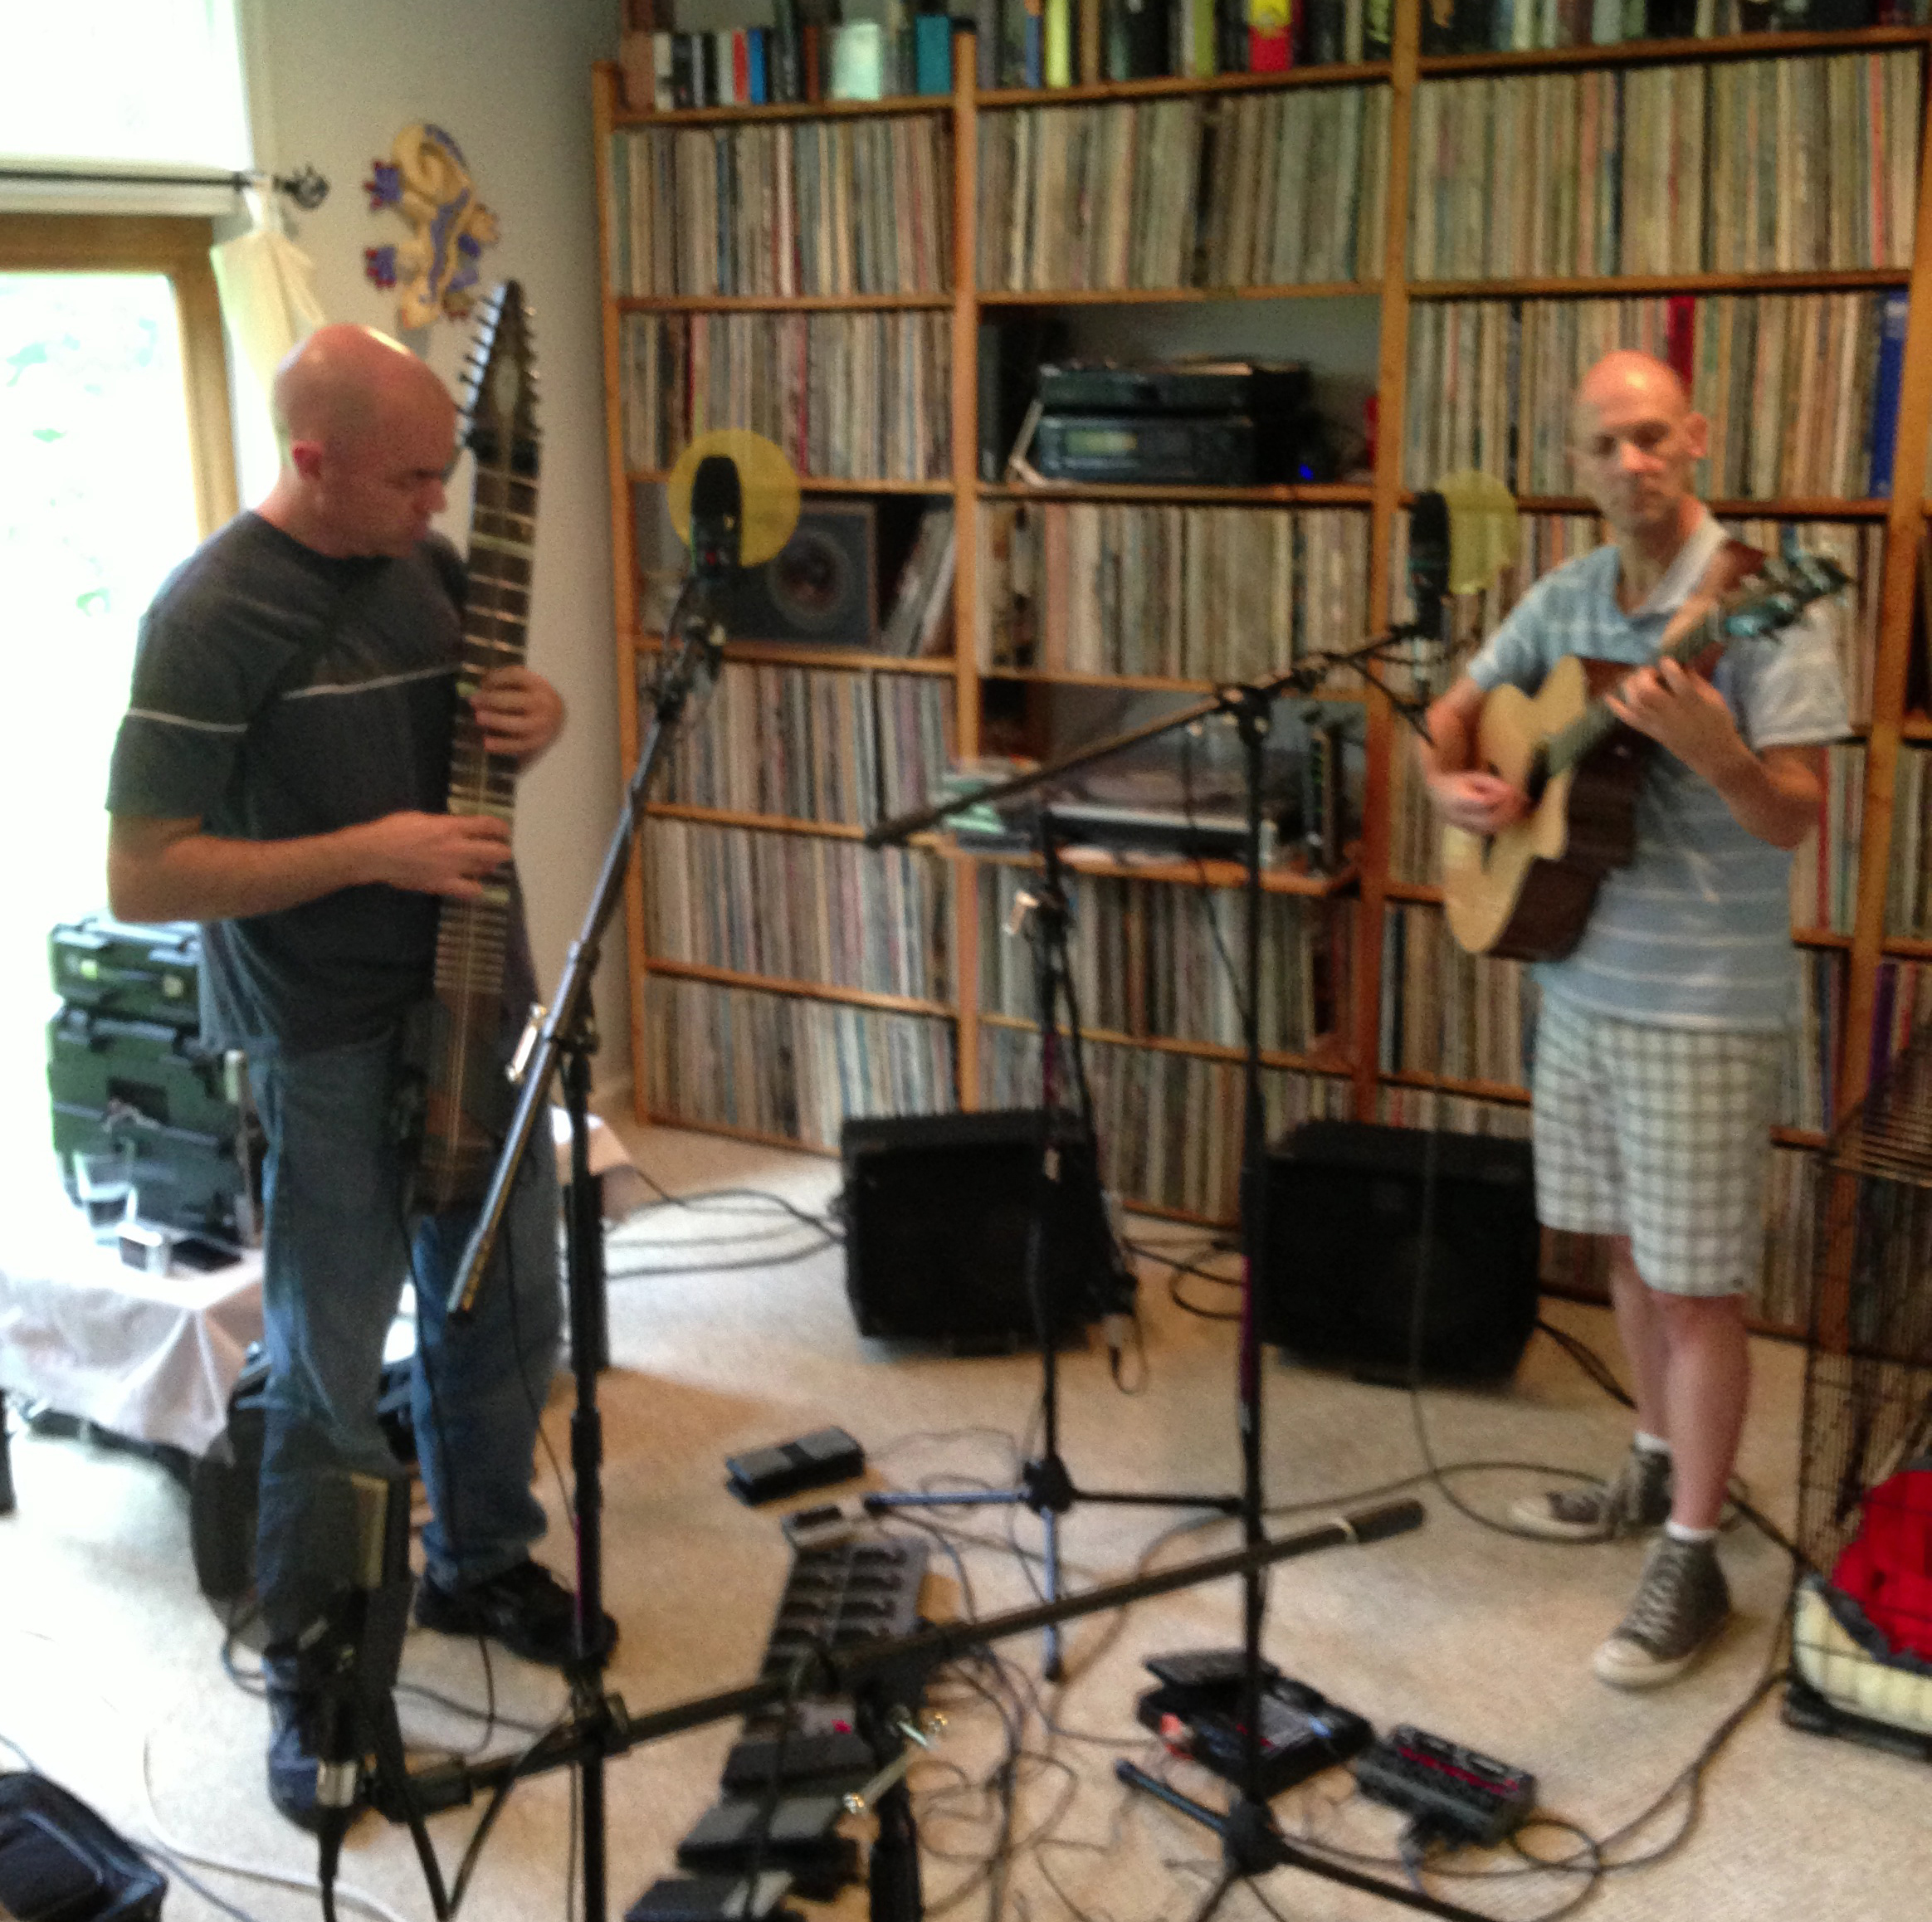 Tom Griesgraber & Ber Lams in Echoes Living Room